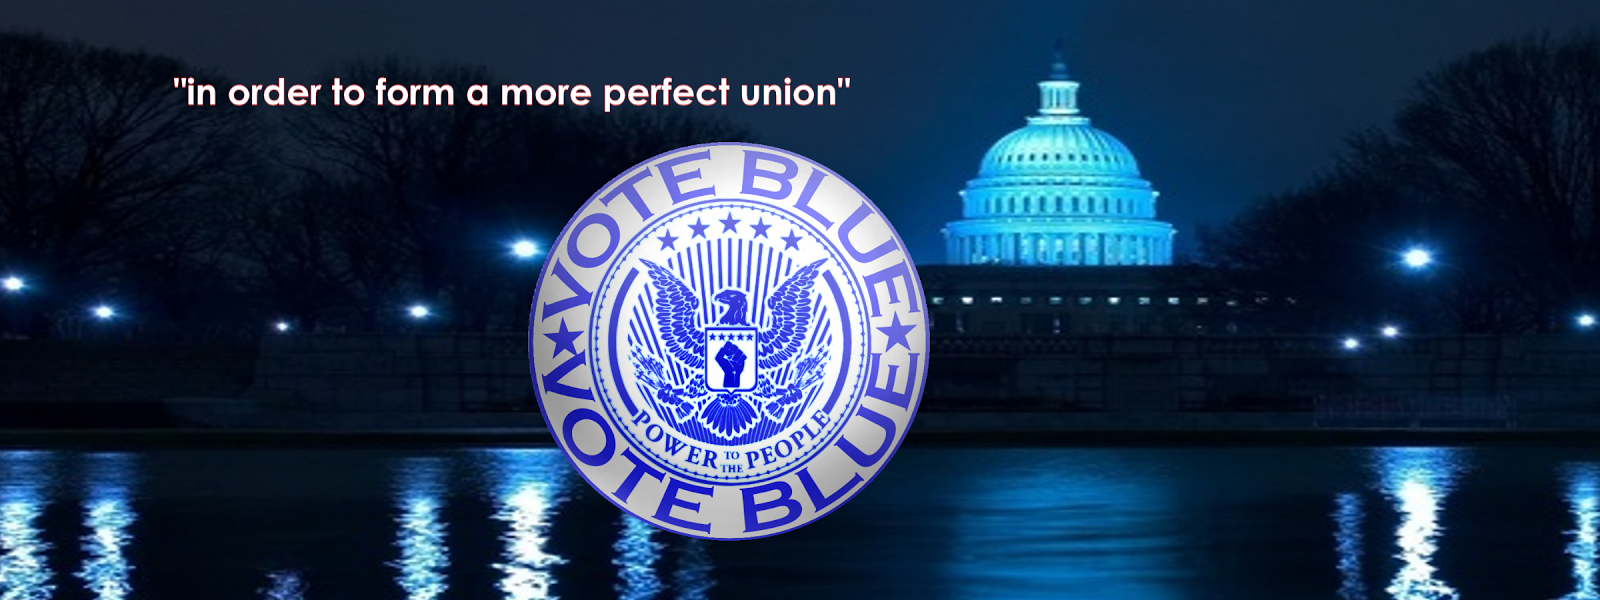 """In order to form a more perfect union"""